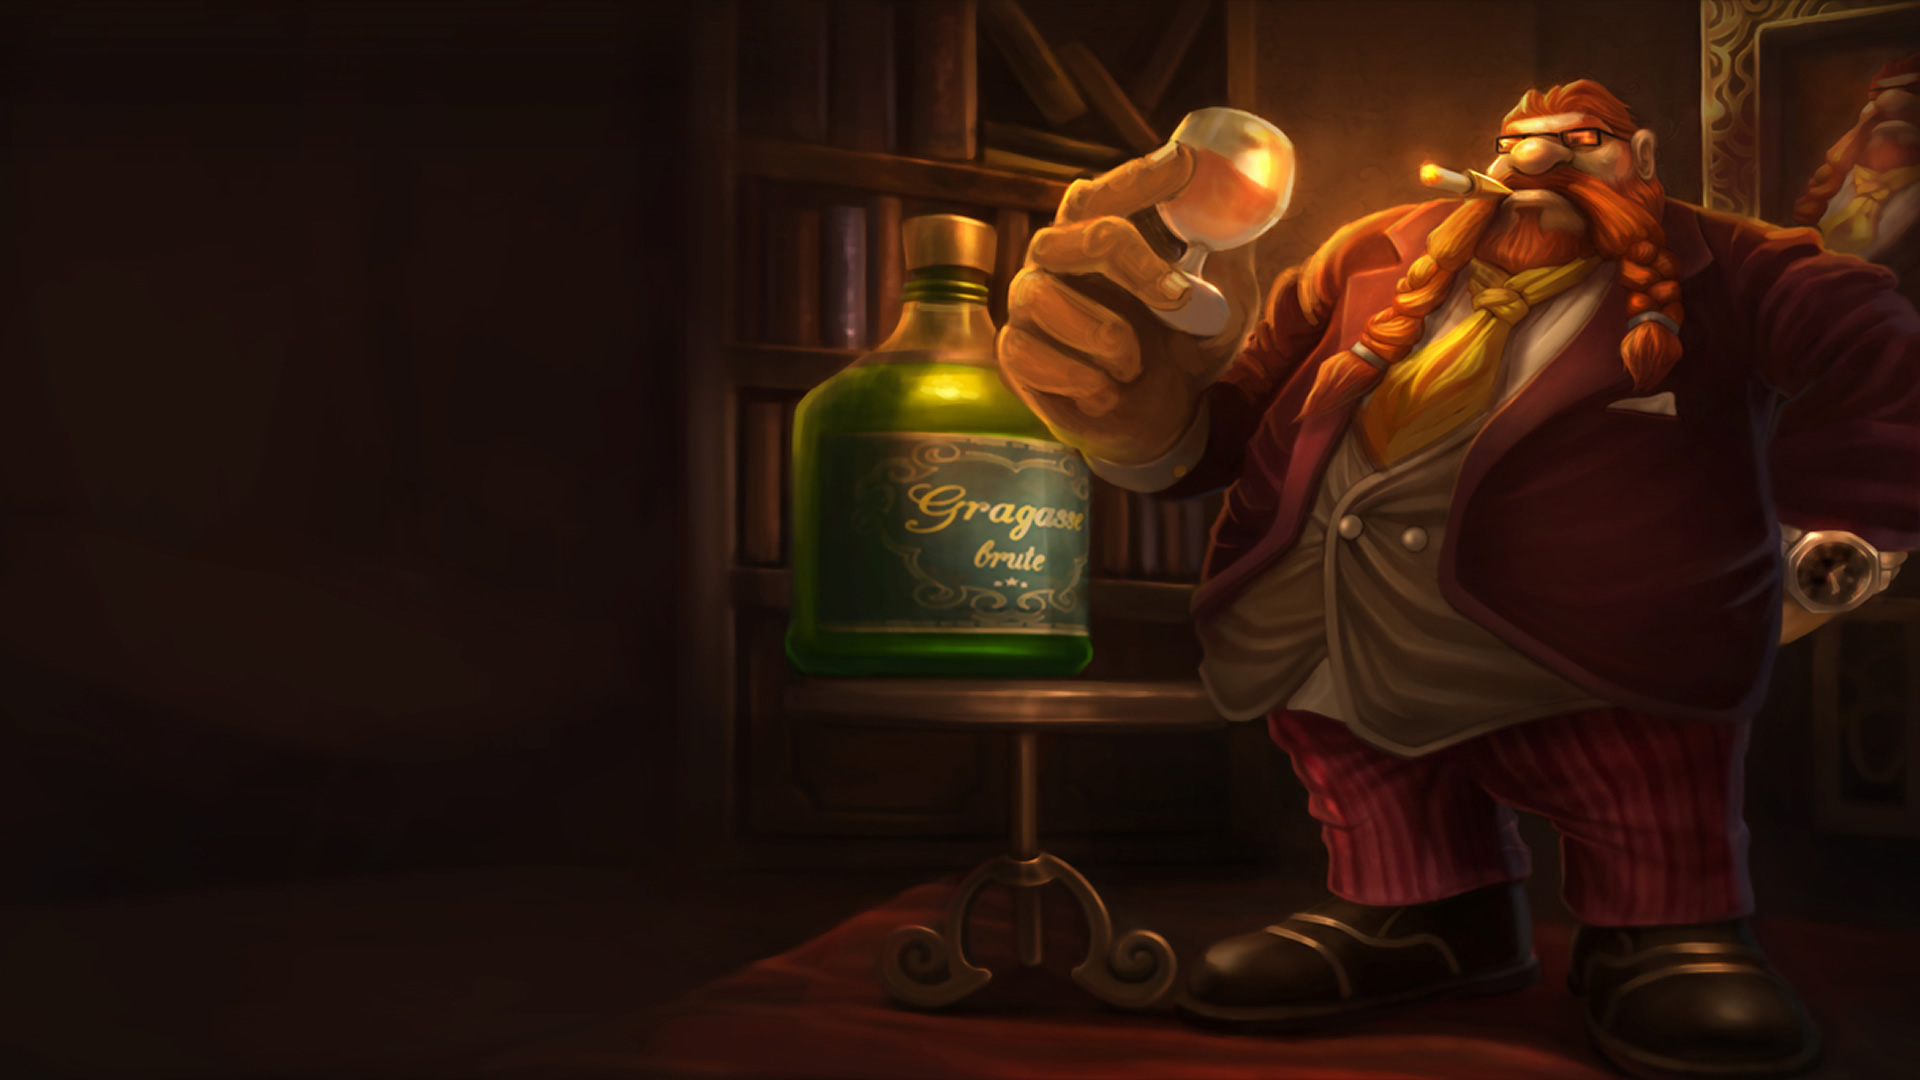 Gragas Esq Wallpaper   LeagueSplash 1920x1080